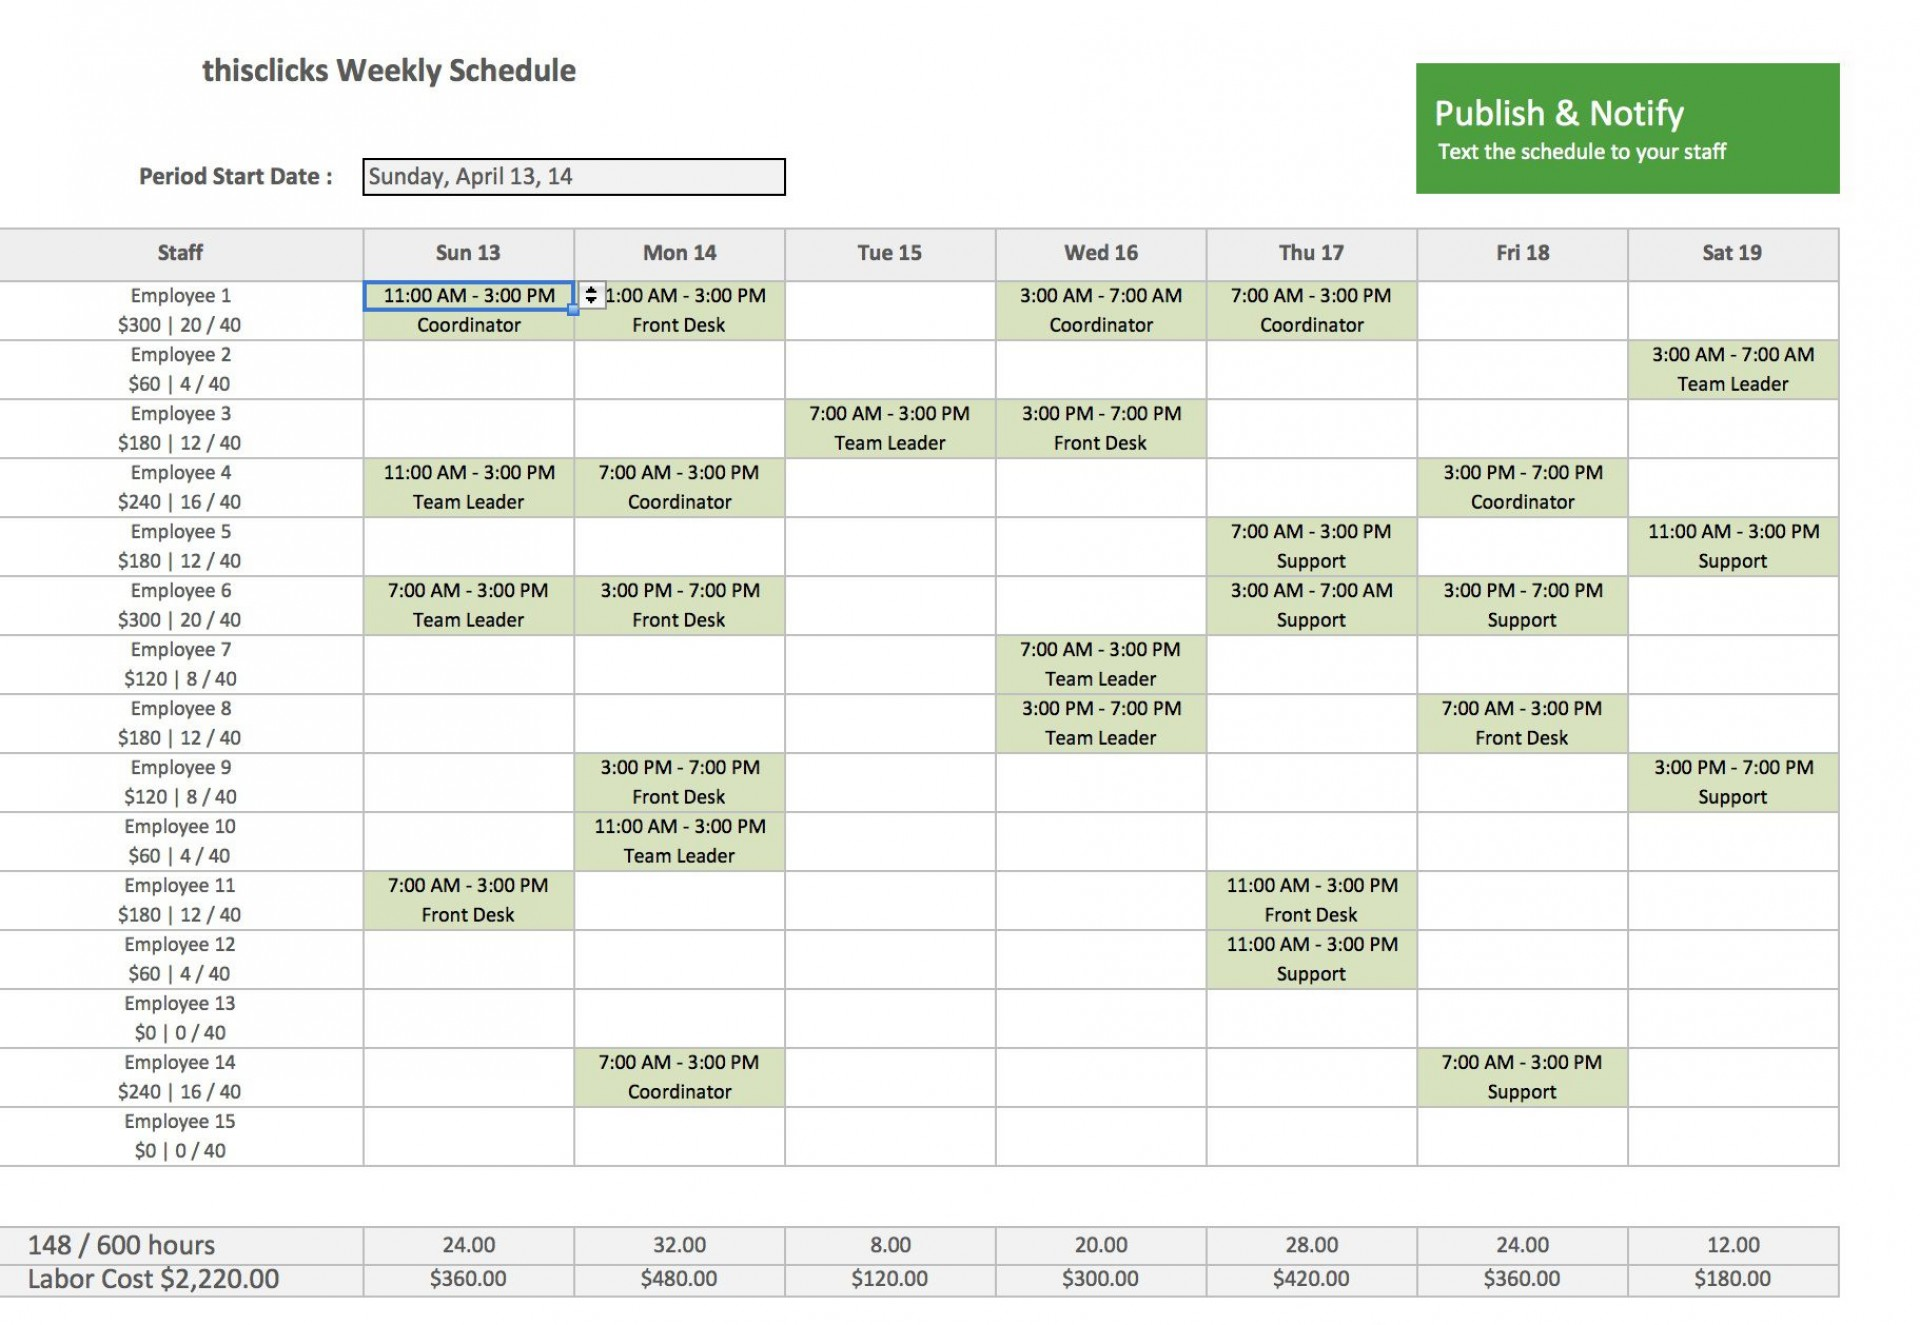 000 Frightening Employee Schedule Template Free Sample  Downloadable Weekly Work Training Excel Shift1920